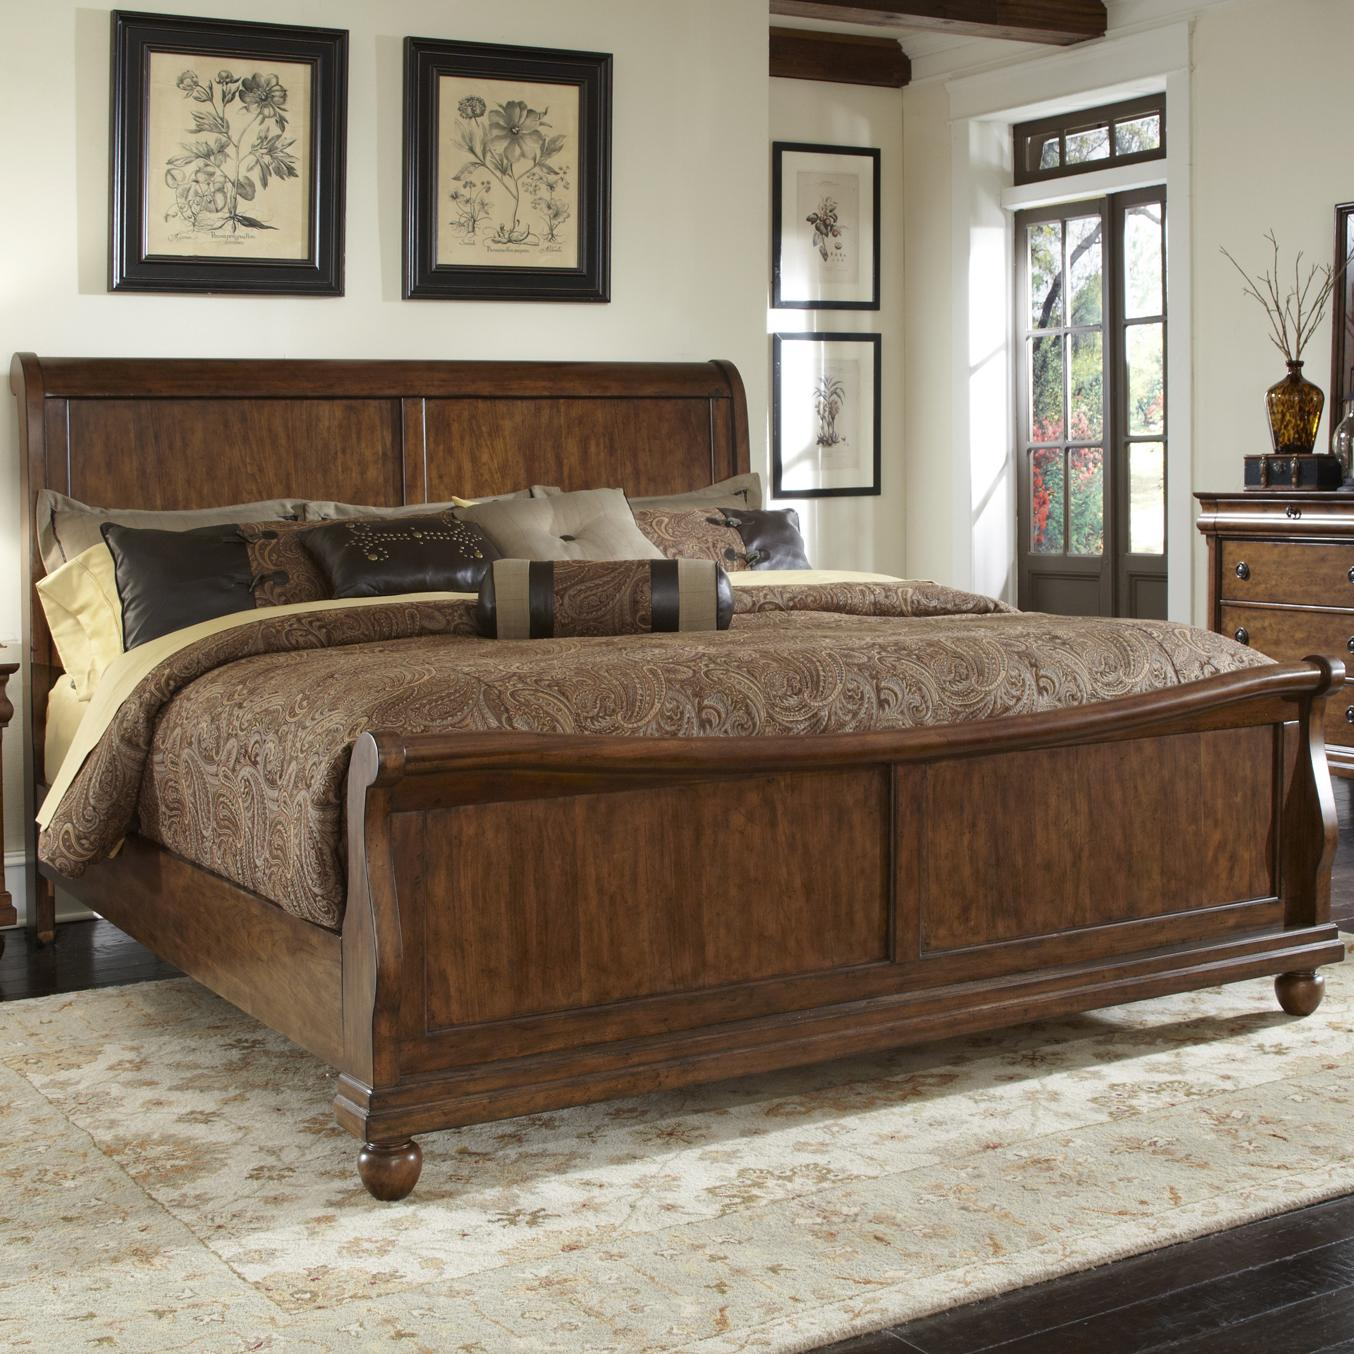 Queen Sleigh Bed Set With Bun Feet By Liberty Furniture